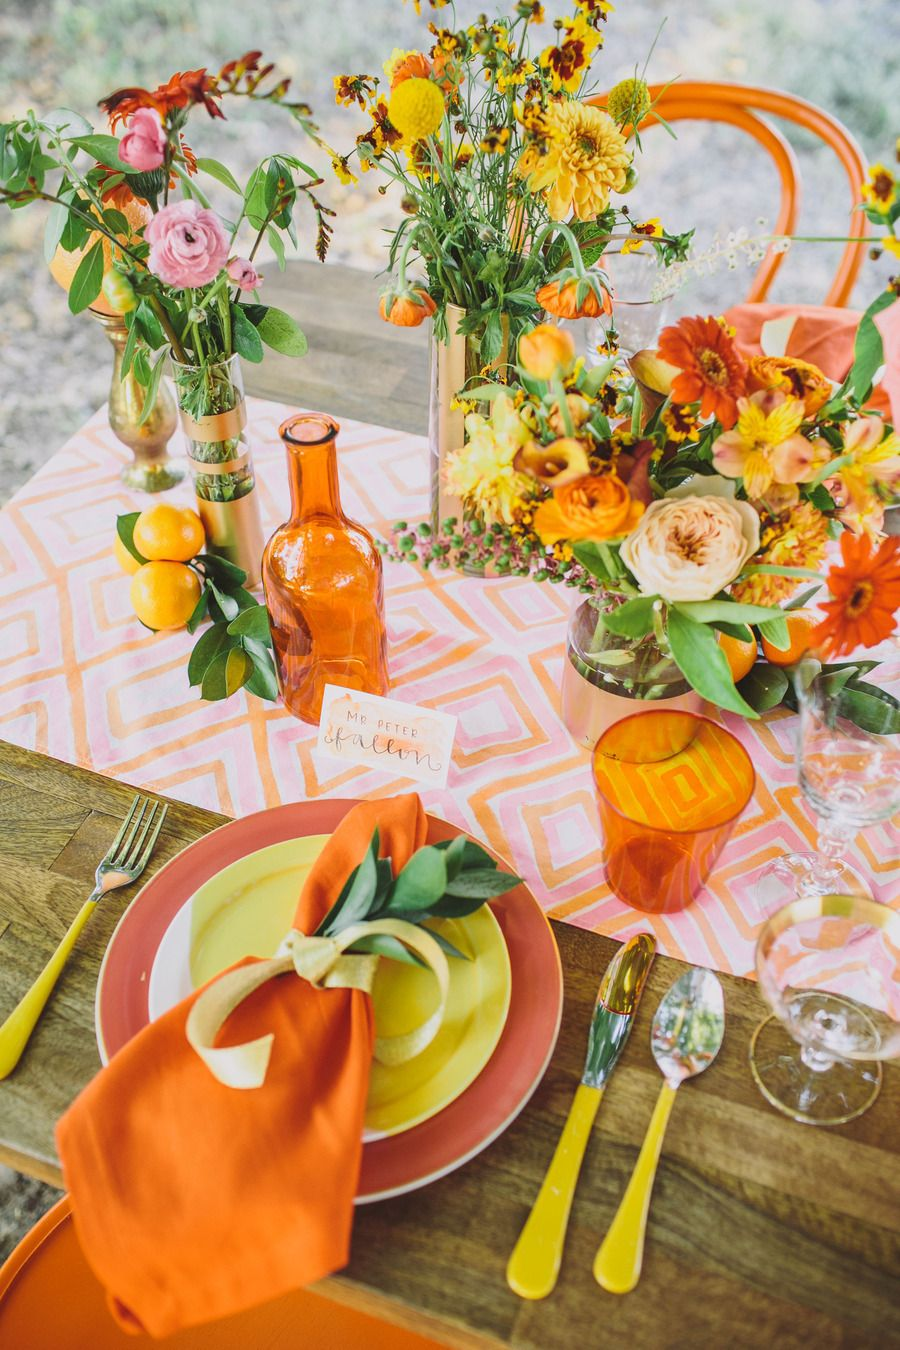 Tischdeko Hochzeit Orange Citrus Inspired Photo Shoot From Anna Delores Photography